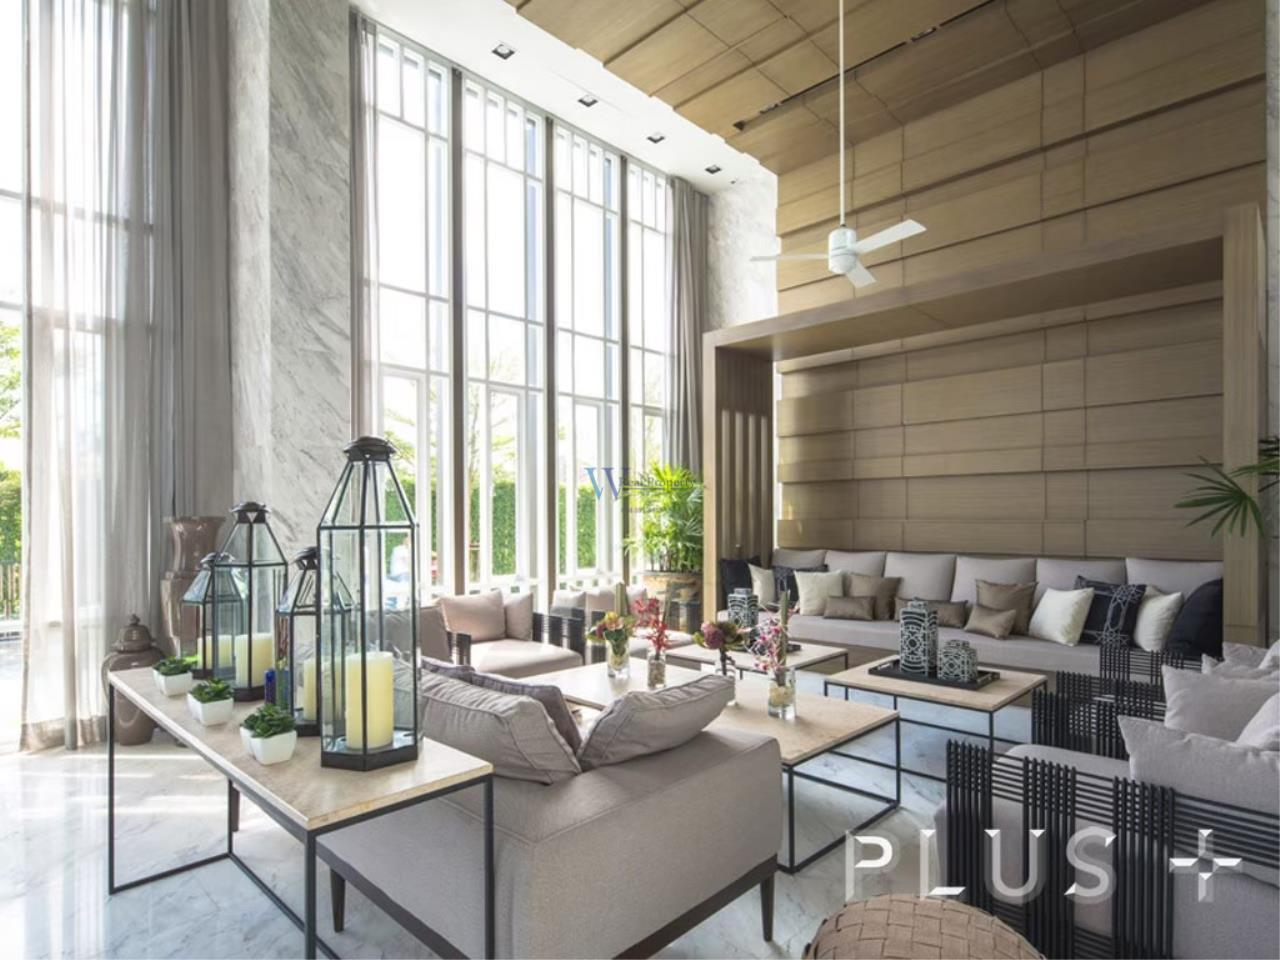 W Real Property Agency's 1 Bedroom Condo for rent in The Base Downtown Phuket, Wichit, Phuket 2